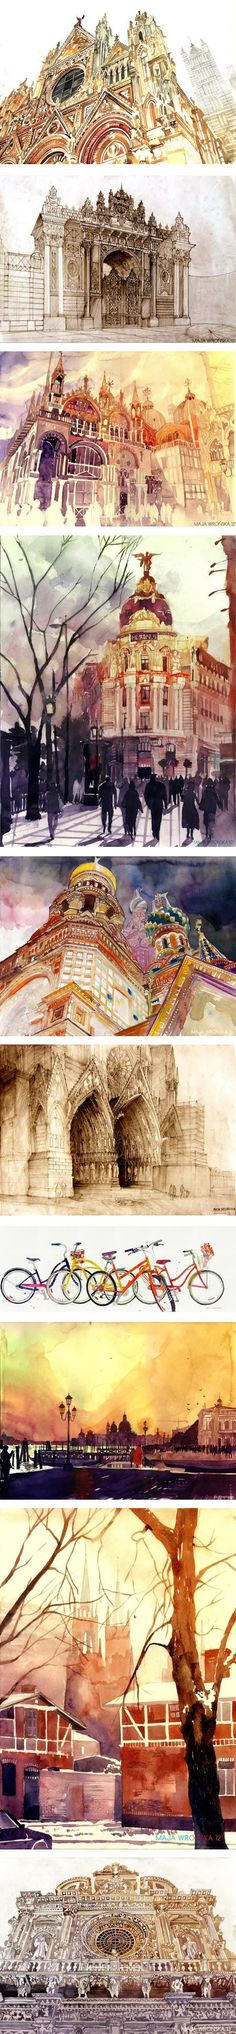 Architectural illustration, By Maja Wronska Watercolor, Negin's favorite style, detailed architectural sketches, Beautiful watercolor paintings of historical buildings Illustration Manga, Illustrations, Crazy Walls, Architecture Drawings, Watercolor Architecture, Classical Architecture, Belle Photo, Watercolor Art, Watercolour Paintings